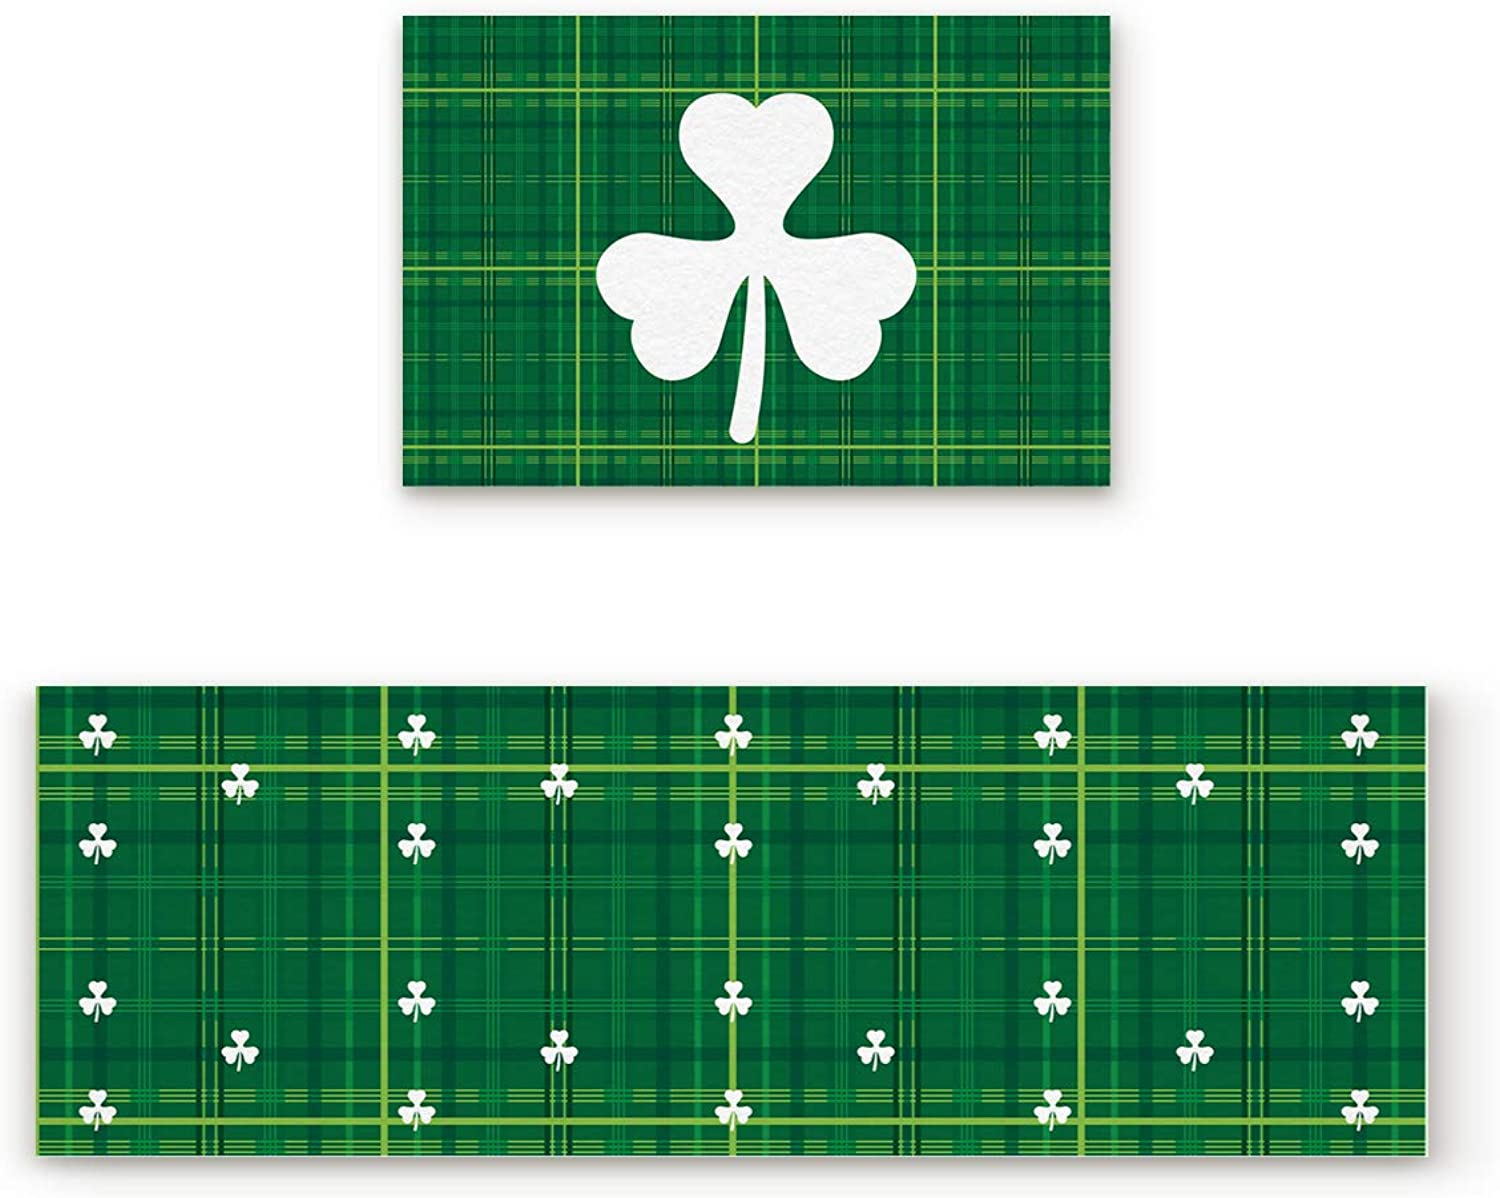 Aomike 2 Piece Non-Slip Kitchen Mat Rubber Backing Doormat Green Plaid and White Shamrock Pattern Runner Rug Set, Hallway Living Room Balcony Bathroom Carpet Sets (19.7  x 31.5 +19.7  x 63 )